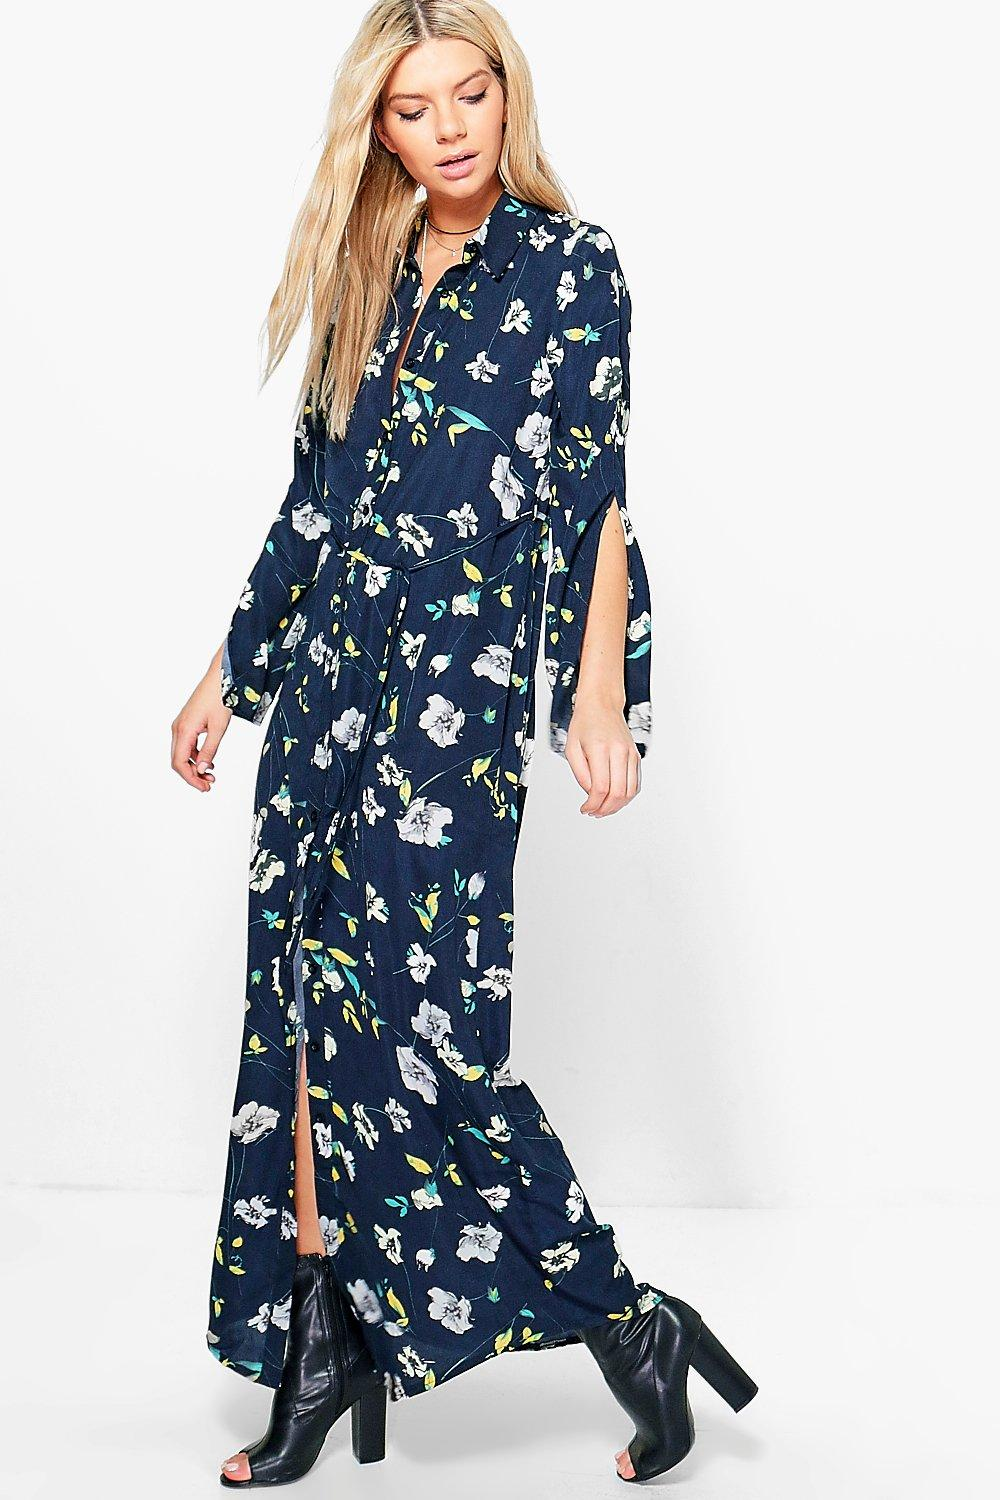 Angela Floral Maxi Shirt Dress Boohoo